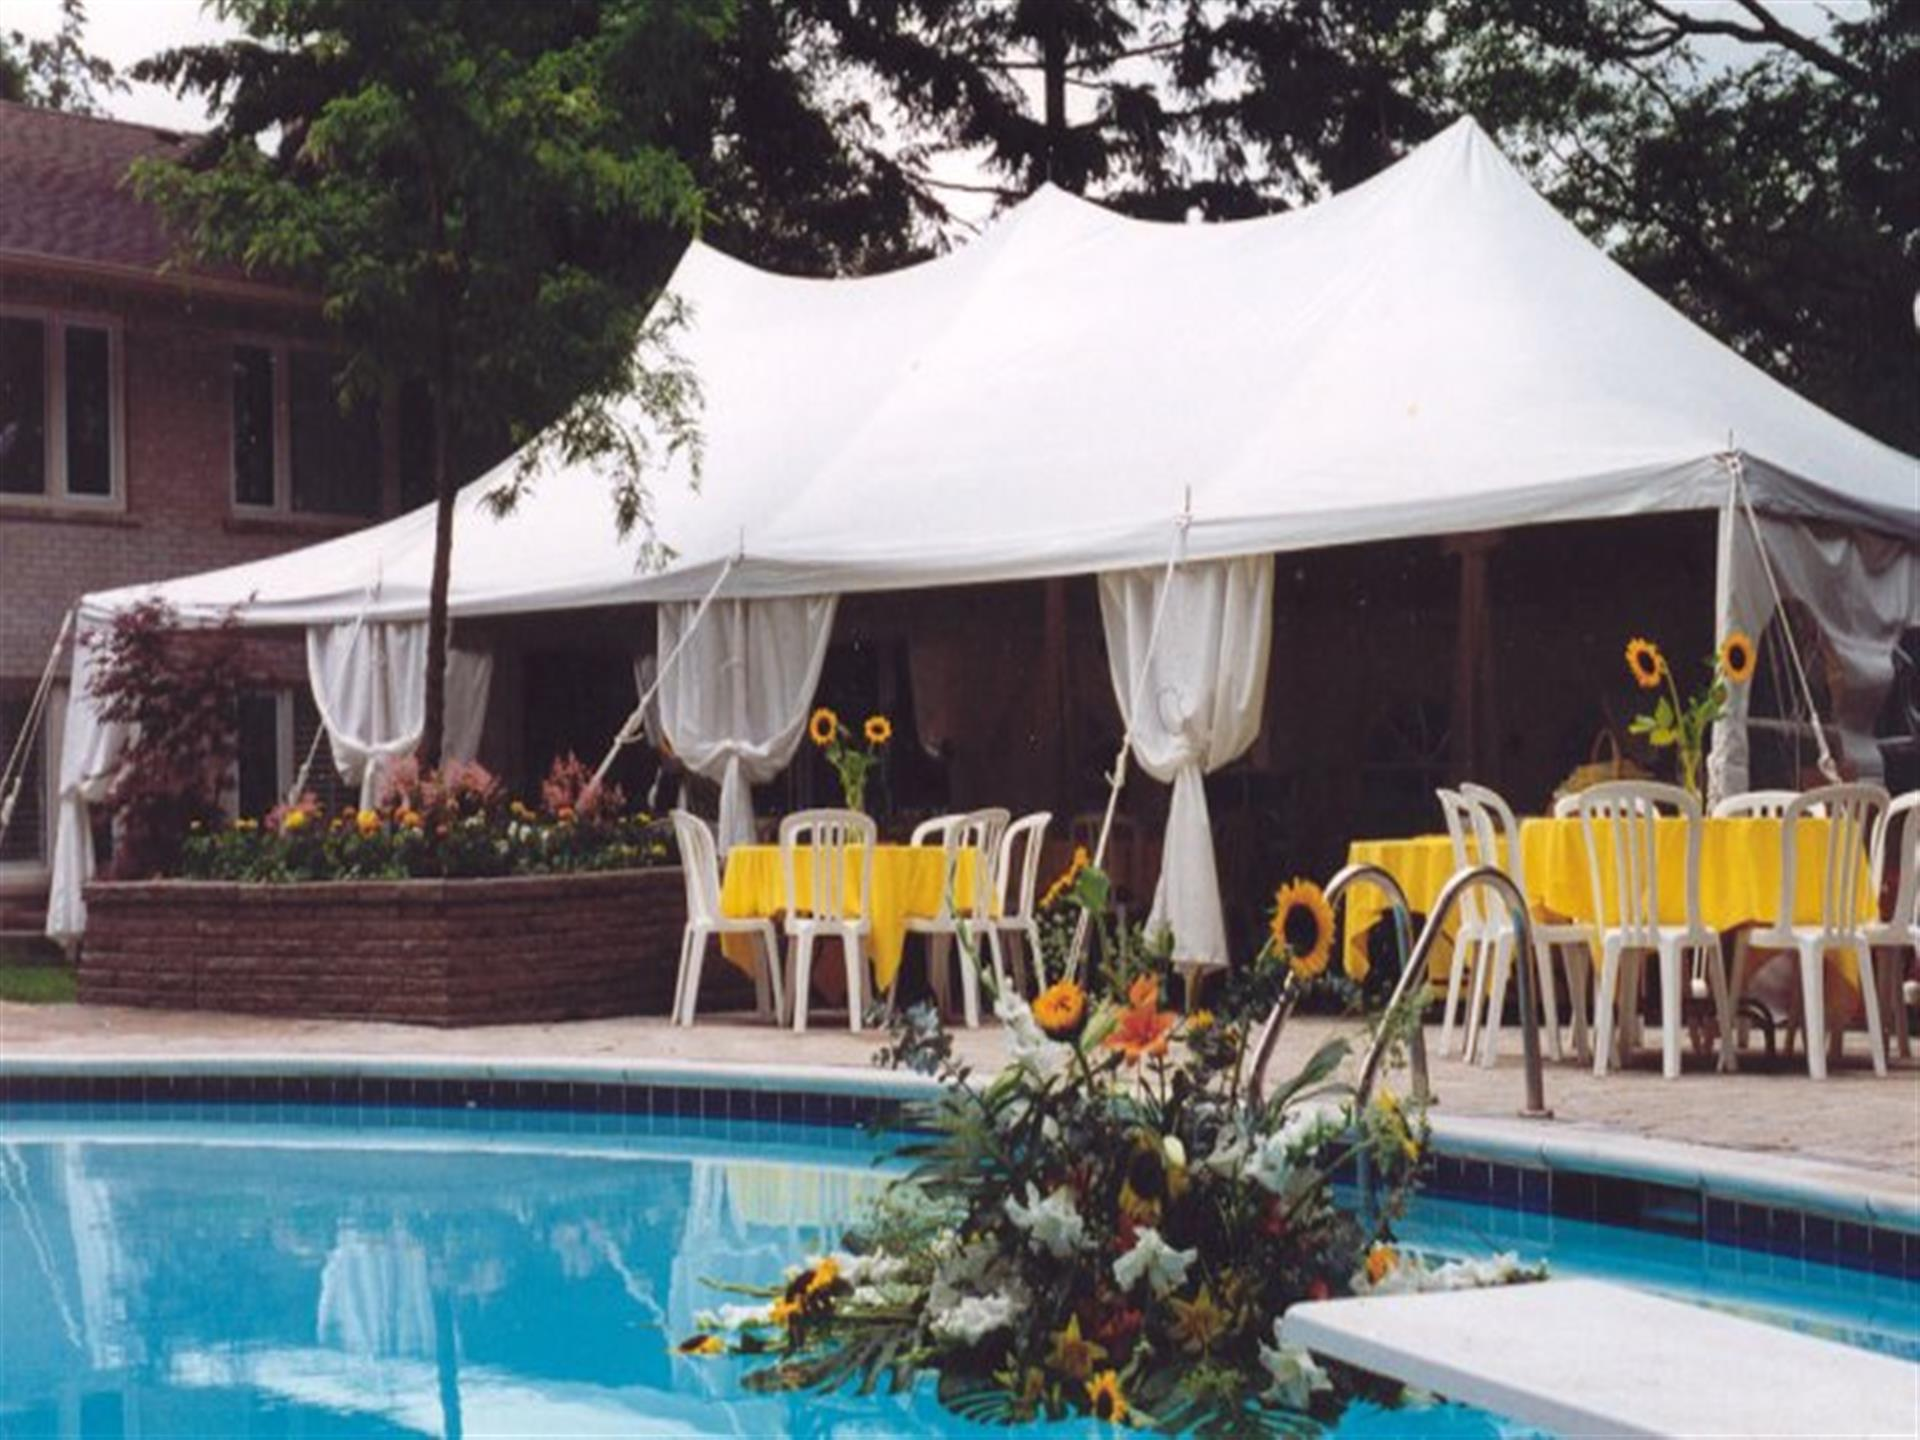 White tent, tables, and chairs poolside